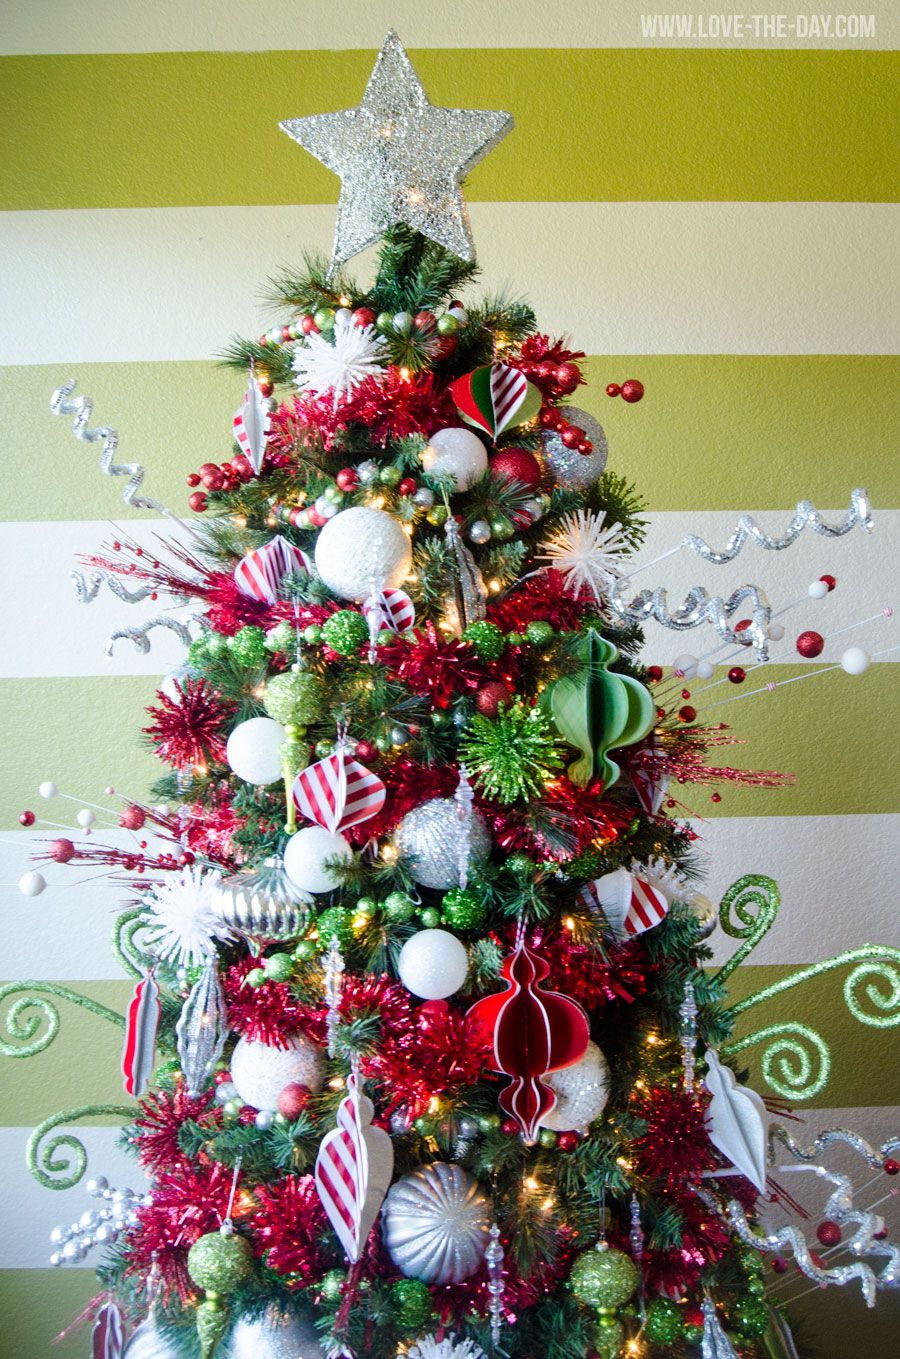 Whimsical Christmas Tree Decorating Ideas Michaels Makers Whimsical Christmas Trees Christmas Tree Images Christmas Tree Decorations